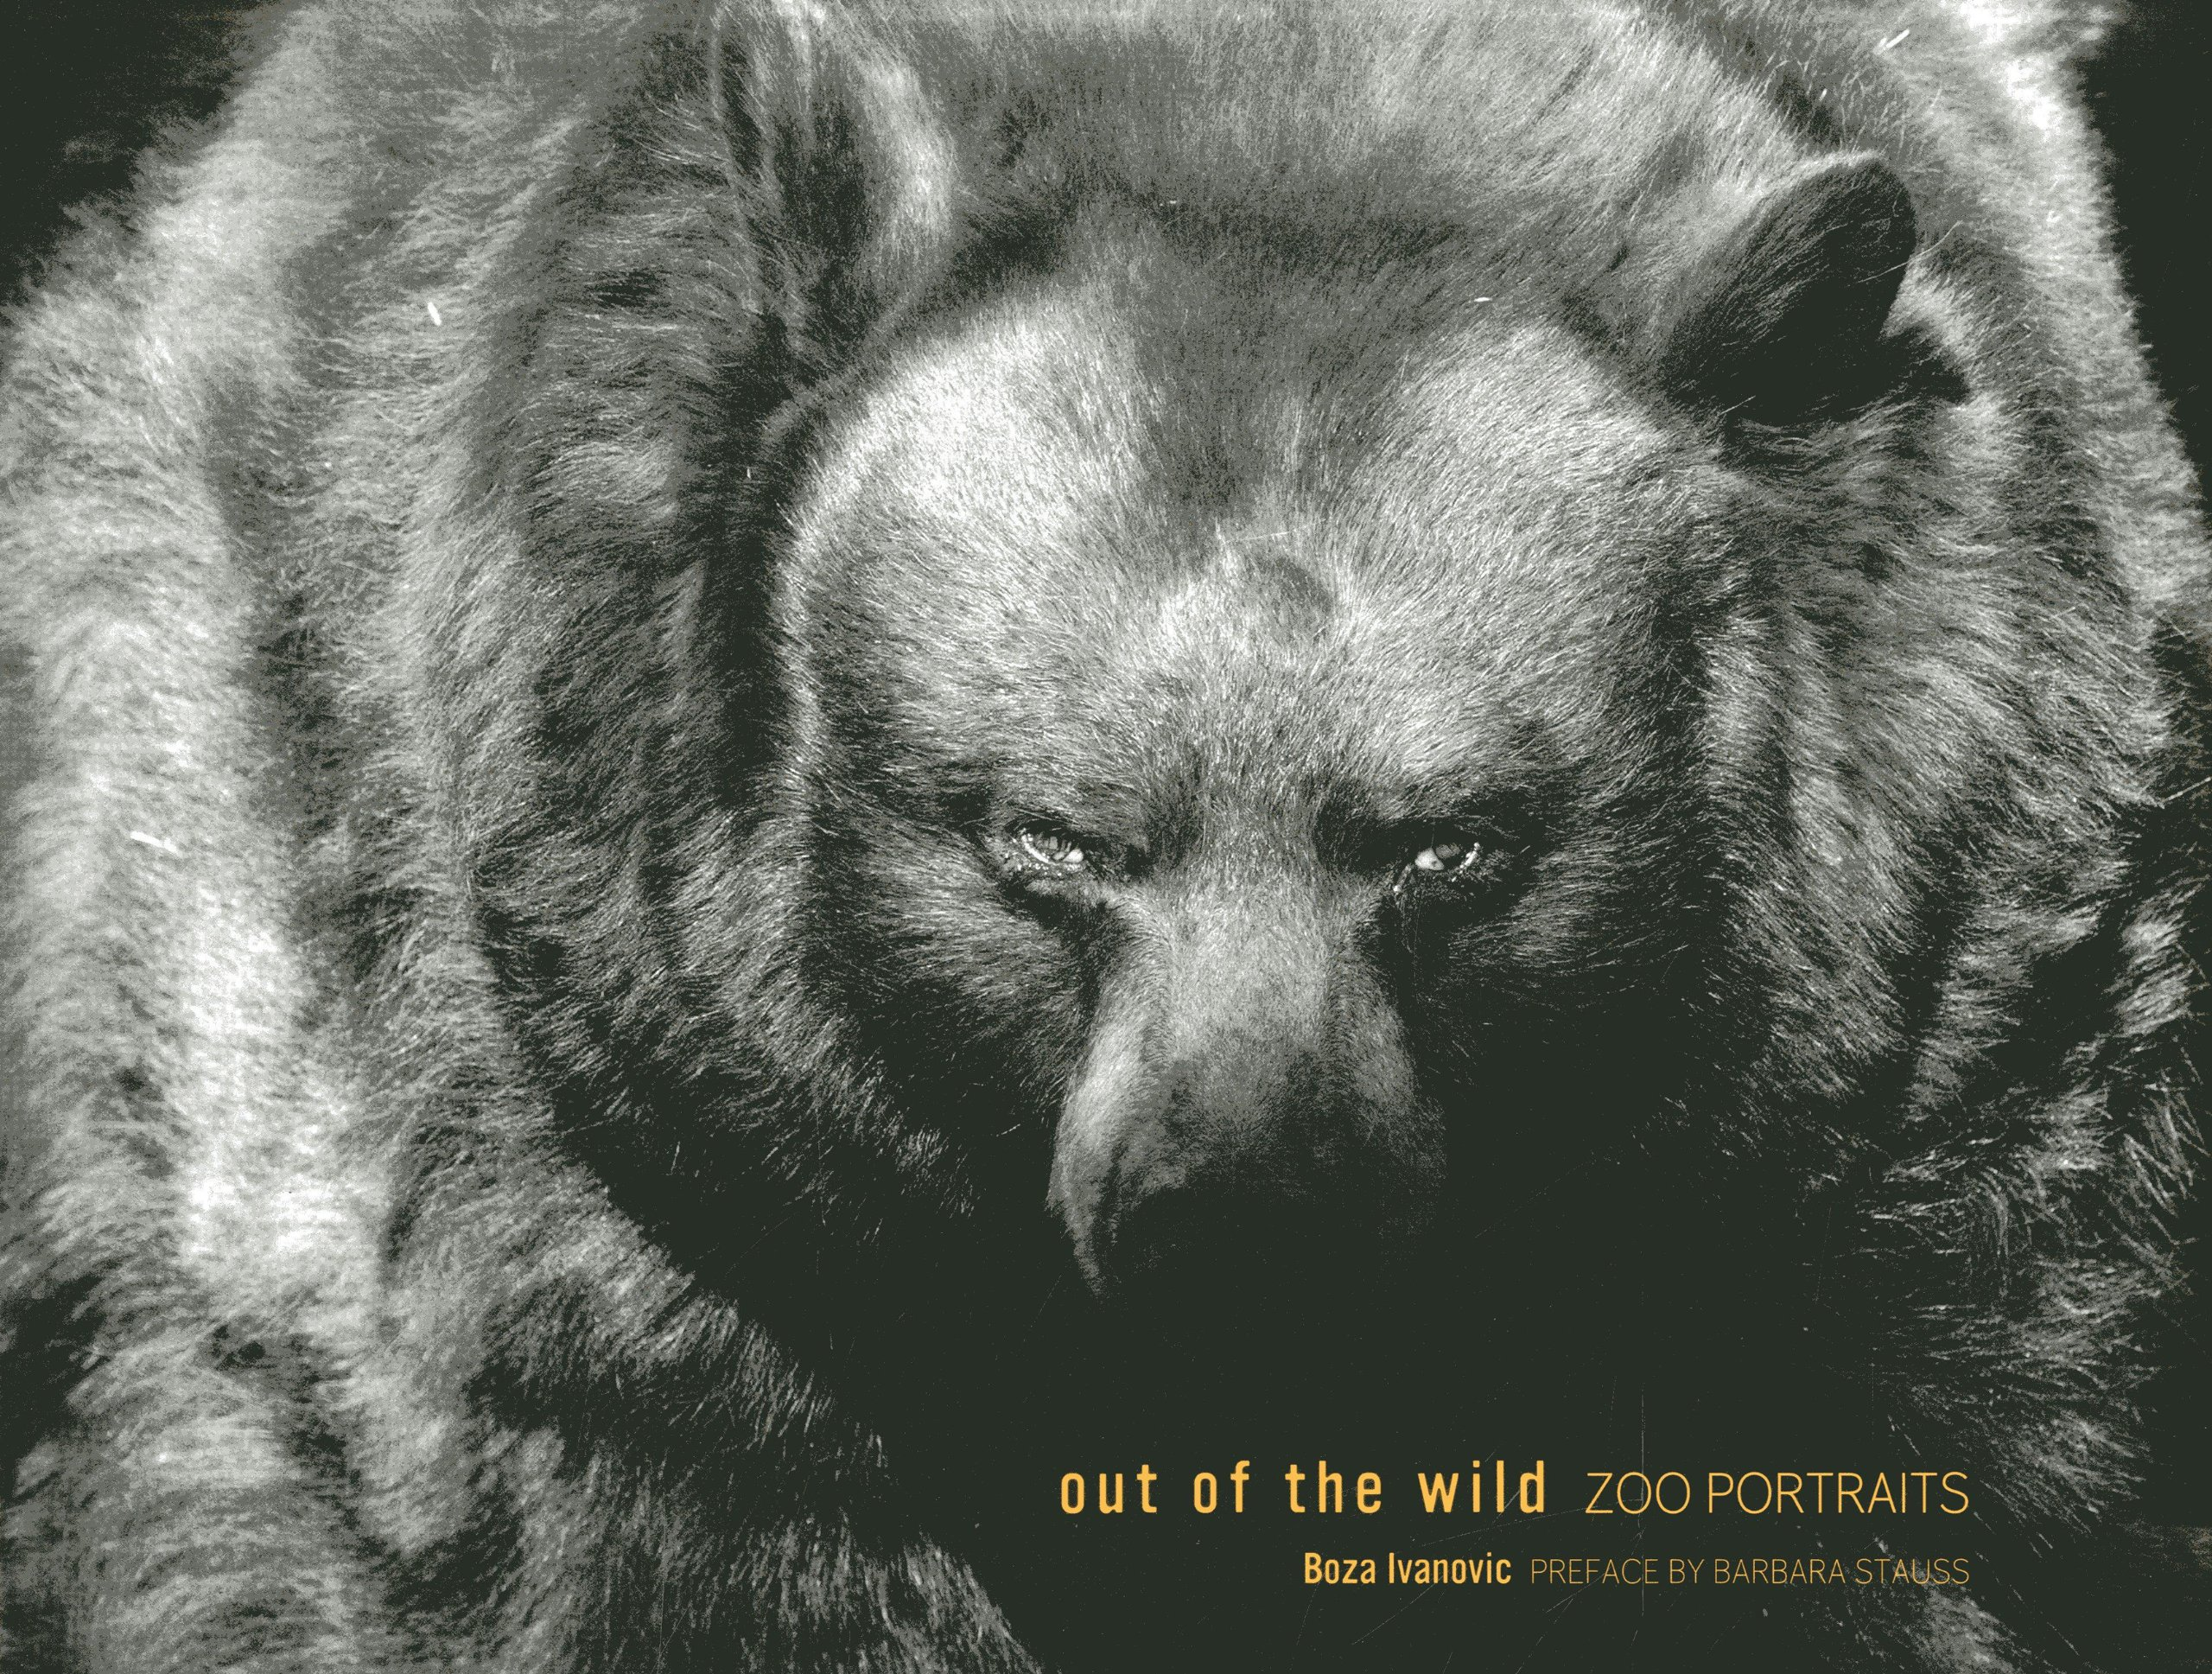 Out of the wild zoo portraits hardcover october 16 2013